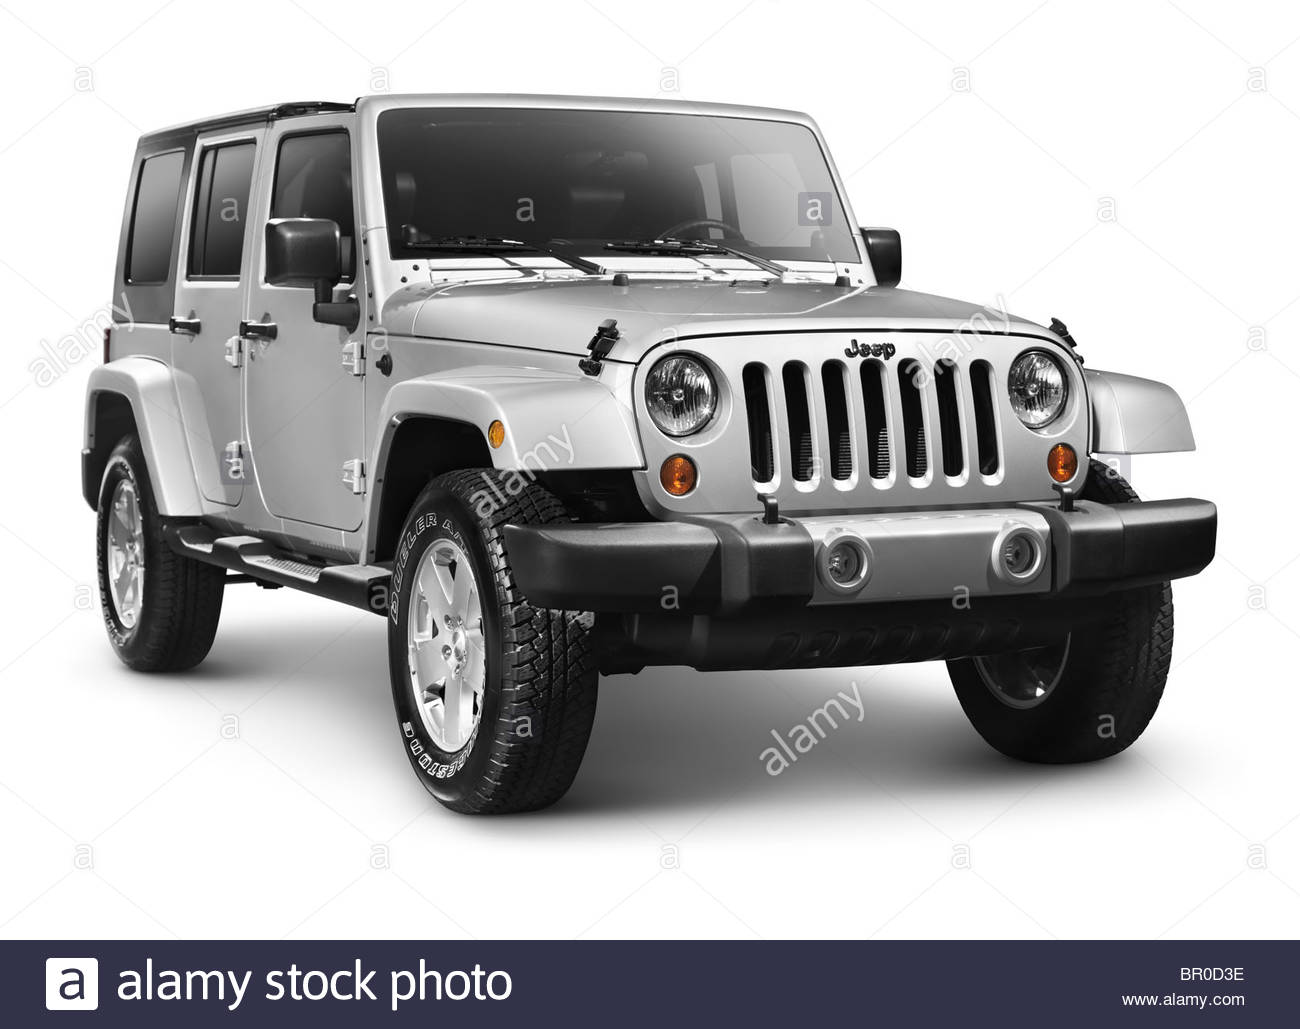 Silver 2011 Jeep Wrangler Unlimited Sahara 4x4 SUV isolated on 1300x1029